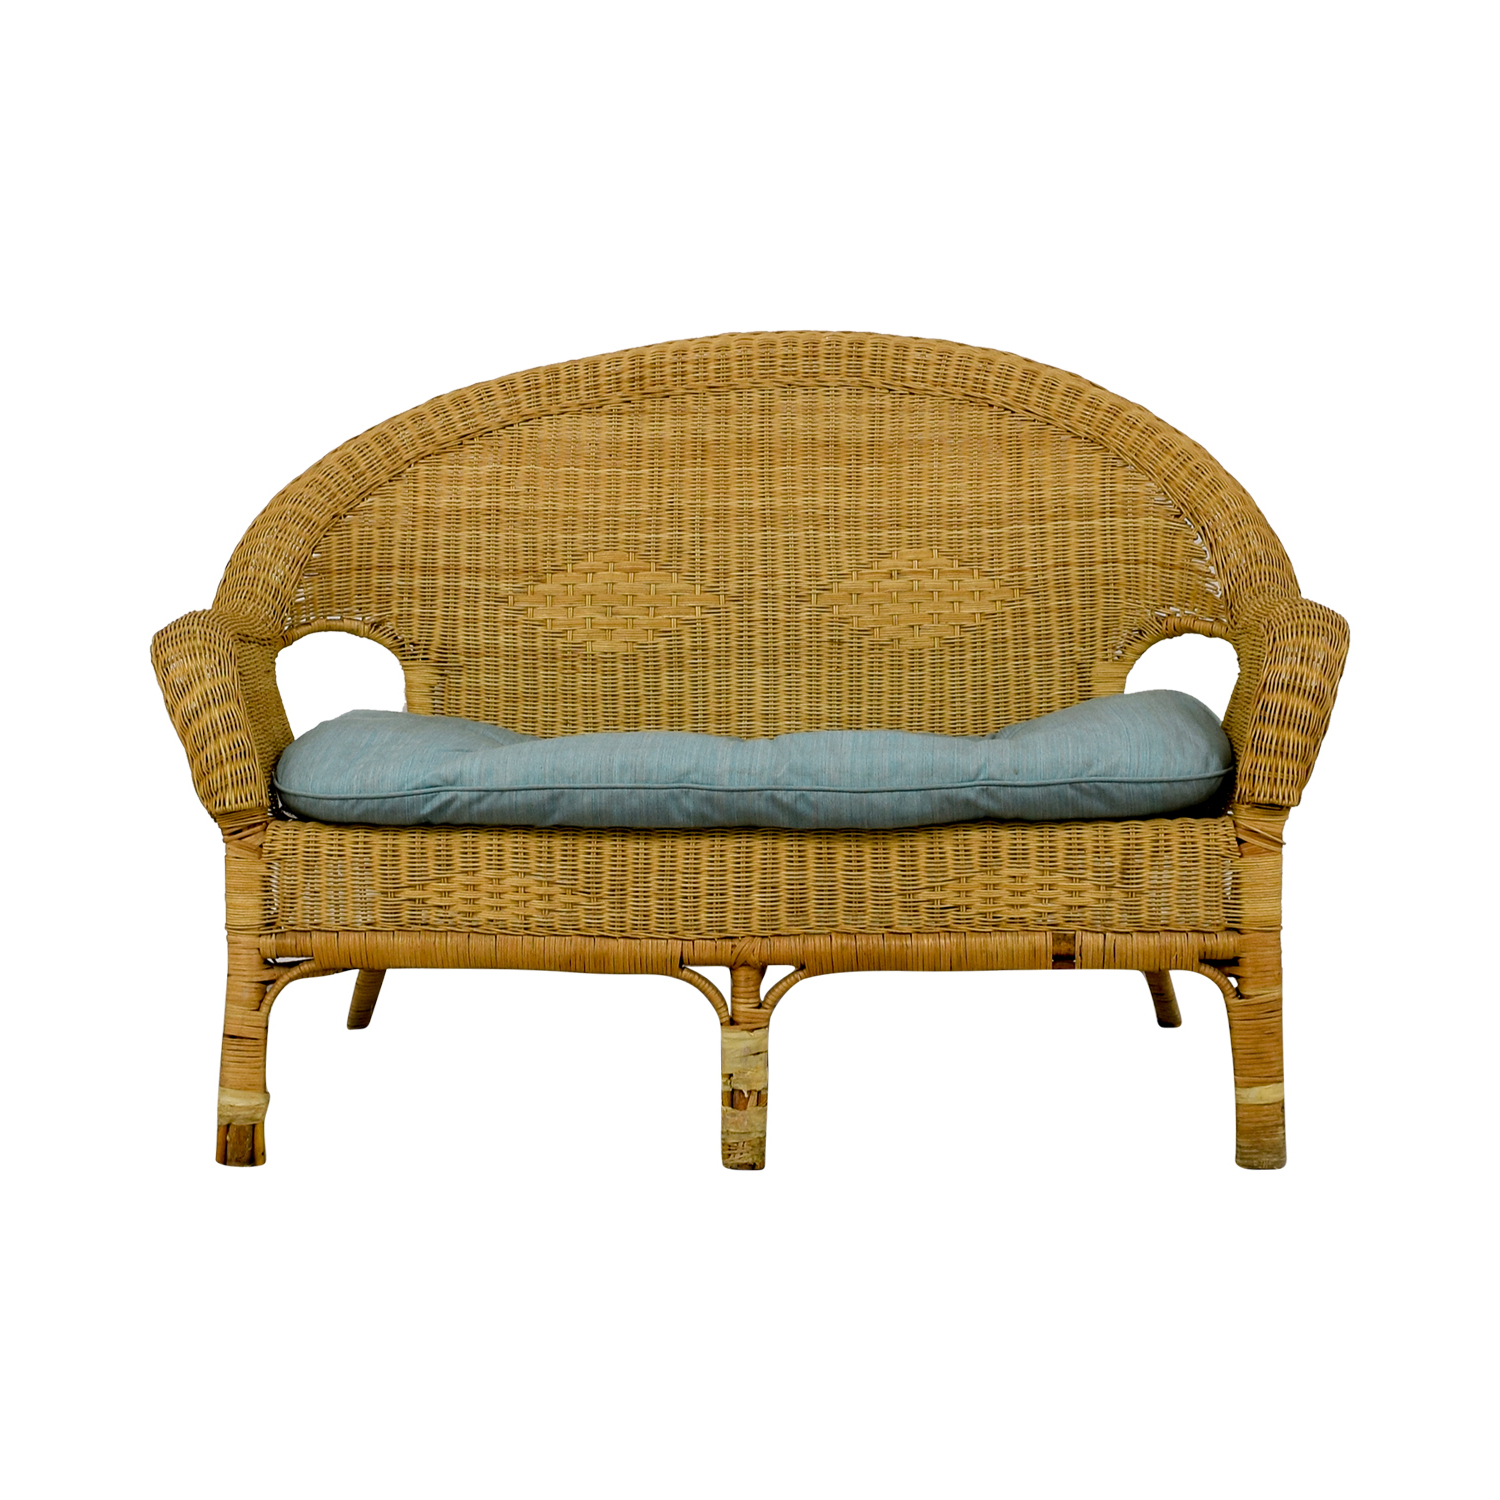 [%90% Off – Wicker Loveseat / Sofas Regarding Most Recently Released Wicker Loveseats|Wicker Loveseats For Well Known 90% Off – Wicker Loveseat / Sofas|Trendy Wicker Loveseats In 90% Off – Wicker Loveseat / Sofas|Widely Used 90% Off – Wicker Loveseat / Sofas With Wicker Loveseats%] (View 15 of 20)